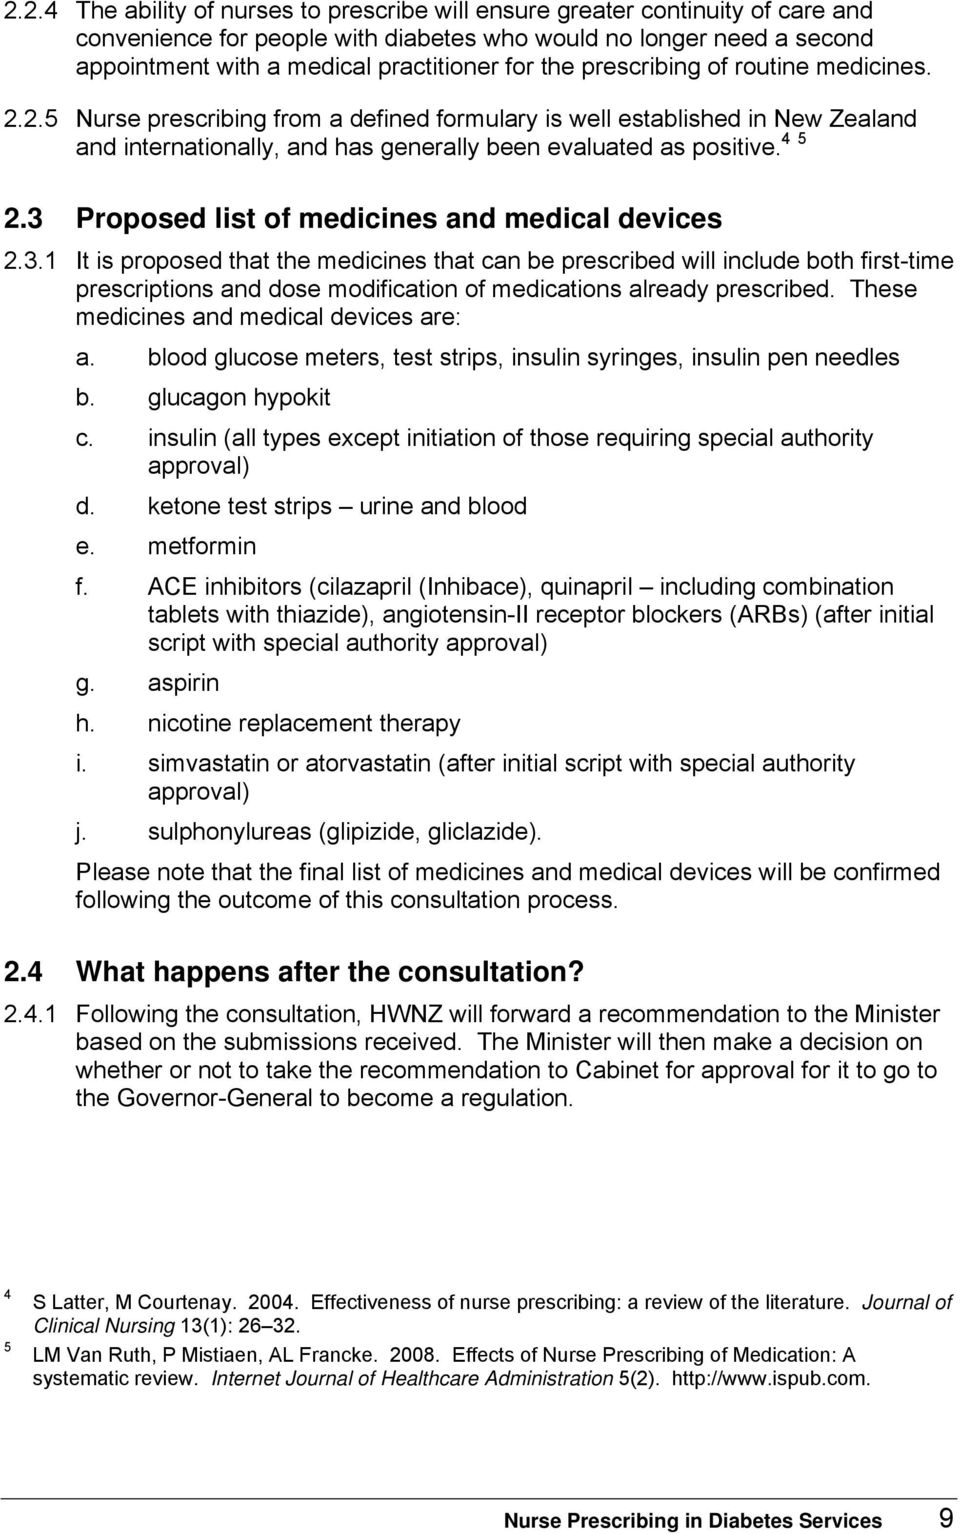 3 Proposed list of medicines and medical devices 2.3.1 It is proposed that the medicines that can be prescribed will include both first-time prescriptions and dose modification of medications already prescribed.